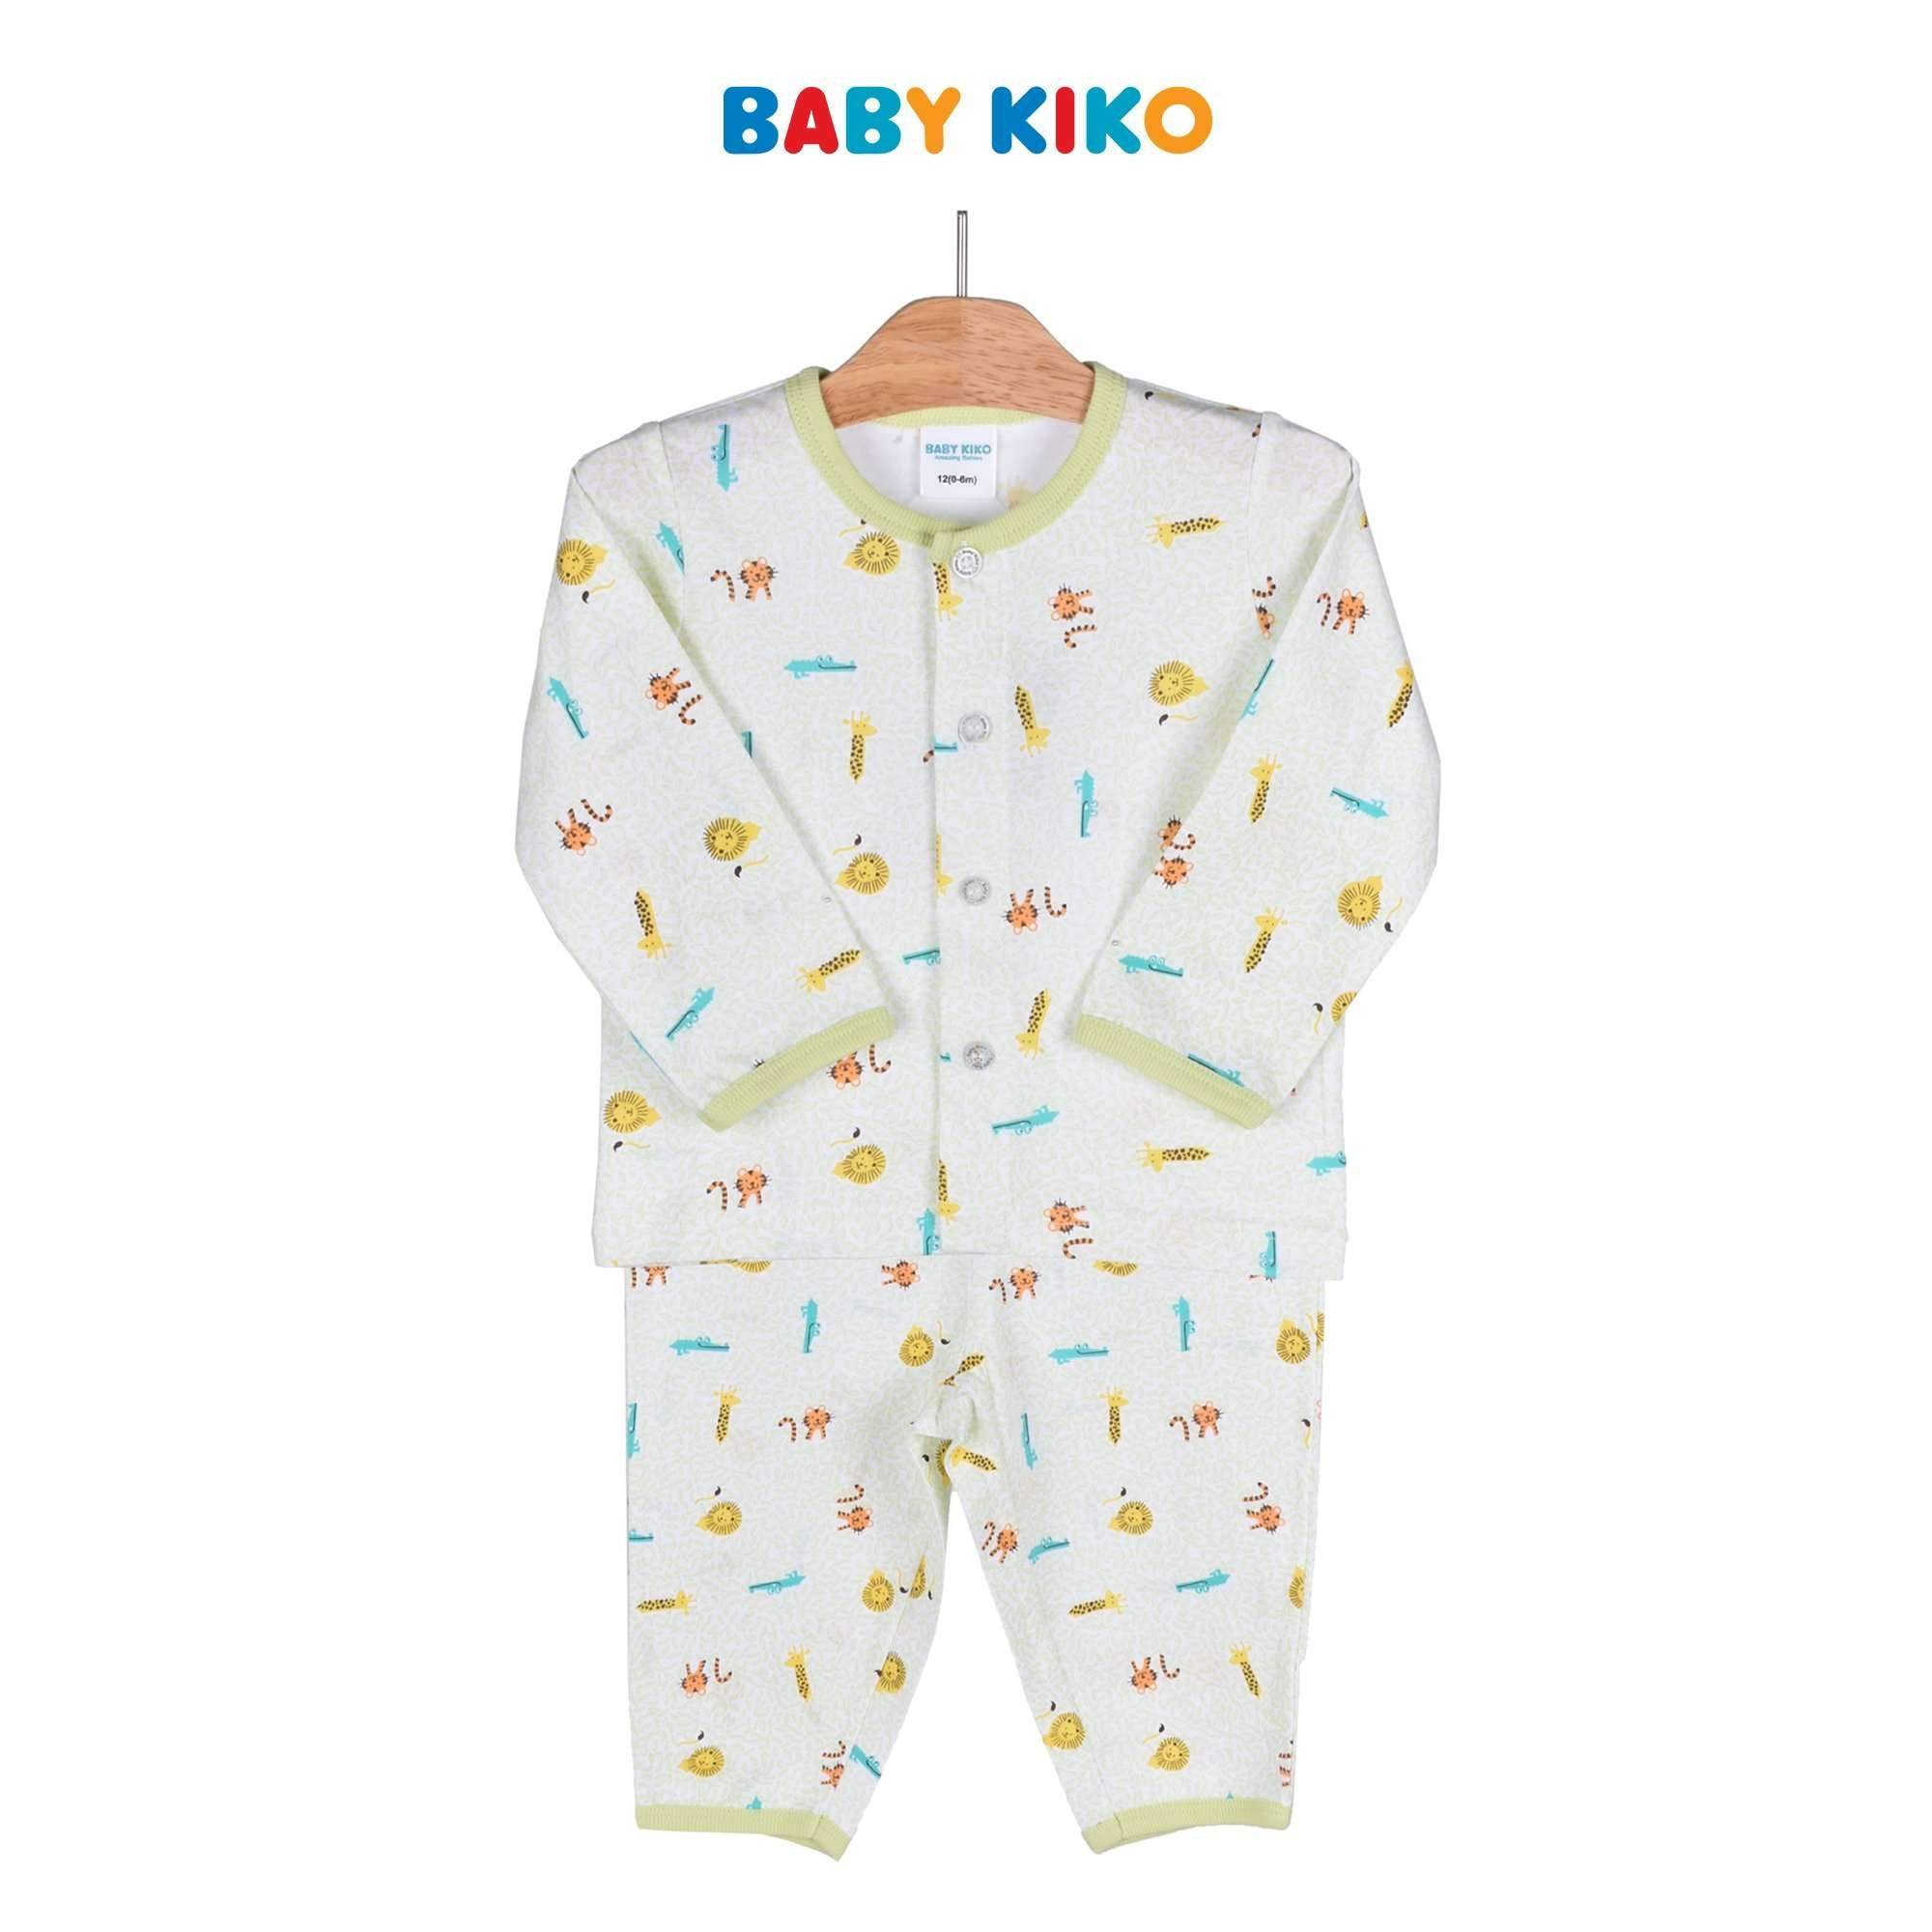 Baby KIKO Baby Boy Long Sleeve Long Pants Suit 320158-431 : Buy Baby KIKO online at CMG.MY